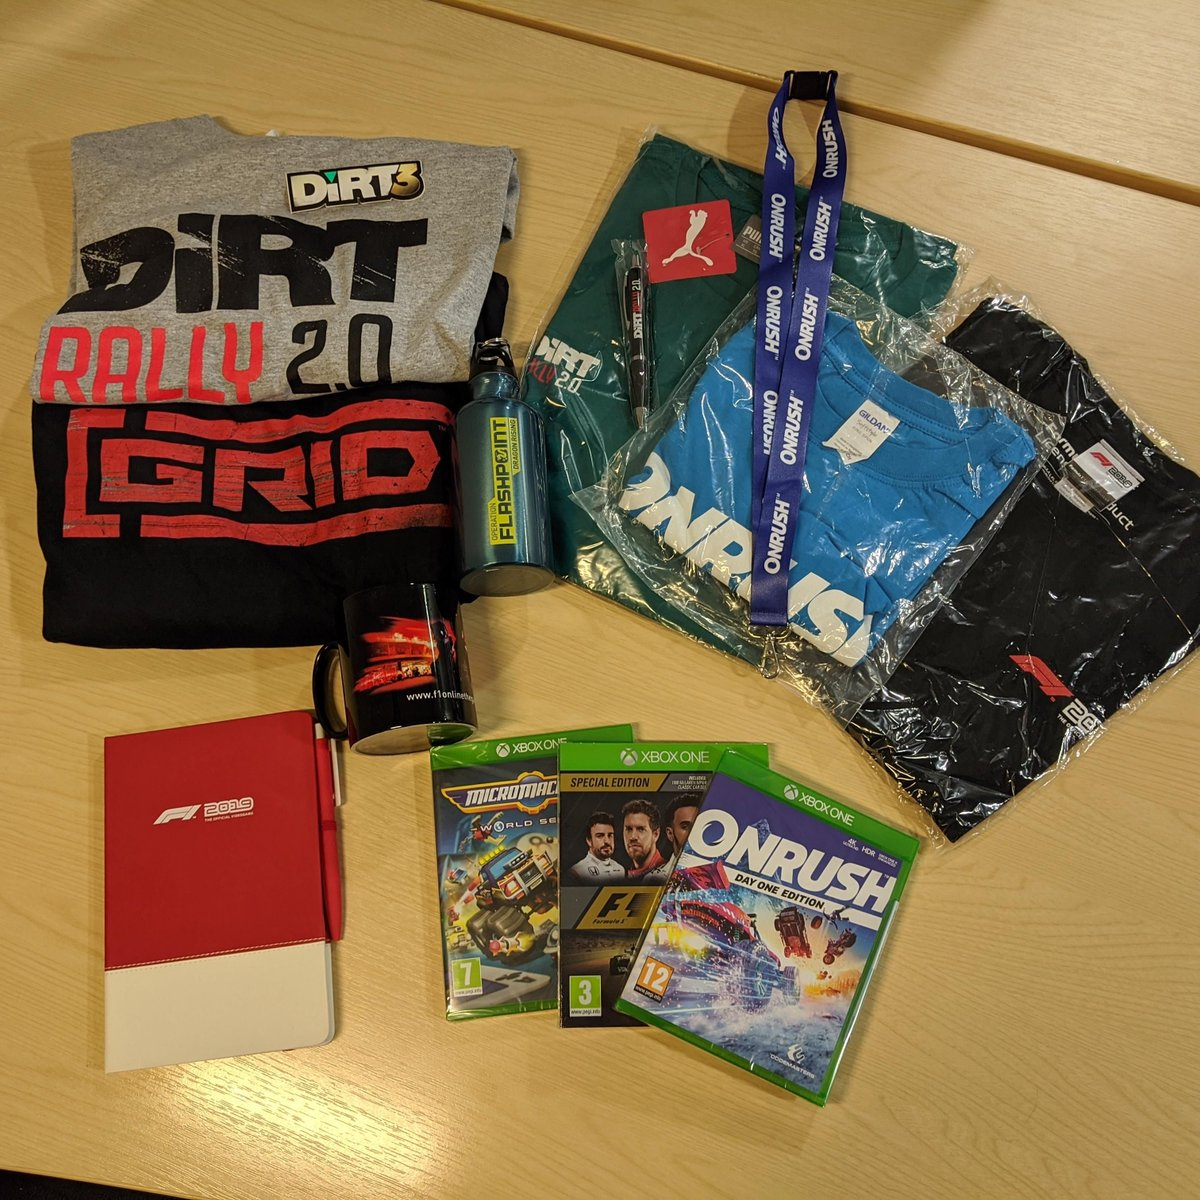 The @GamesAid charity bundle featuring a bunch of Codemasters merch ends in just a few hours. Get bidding before its too late ⏰ buff.ly/38pHkCp